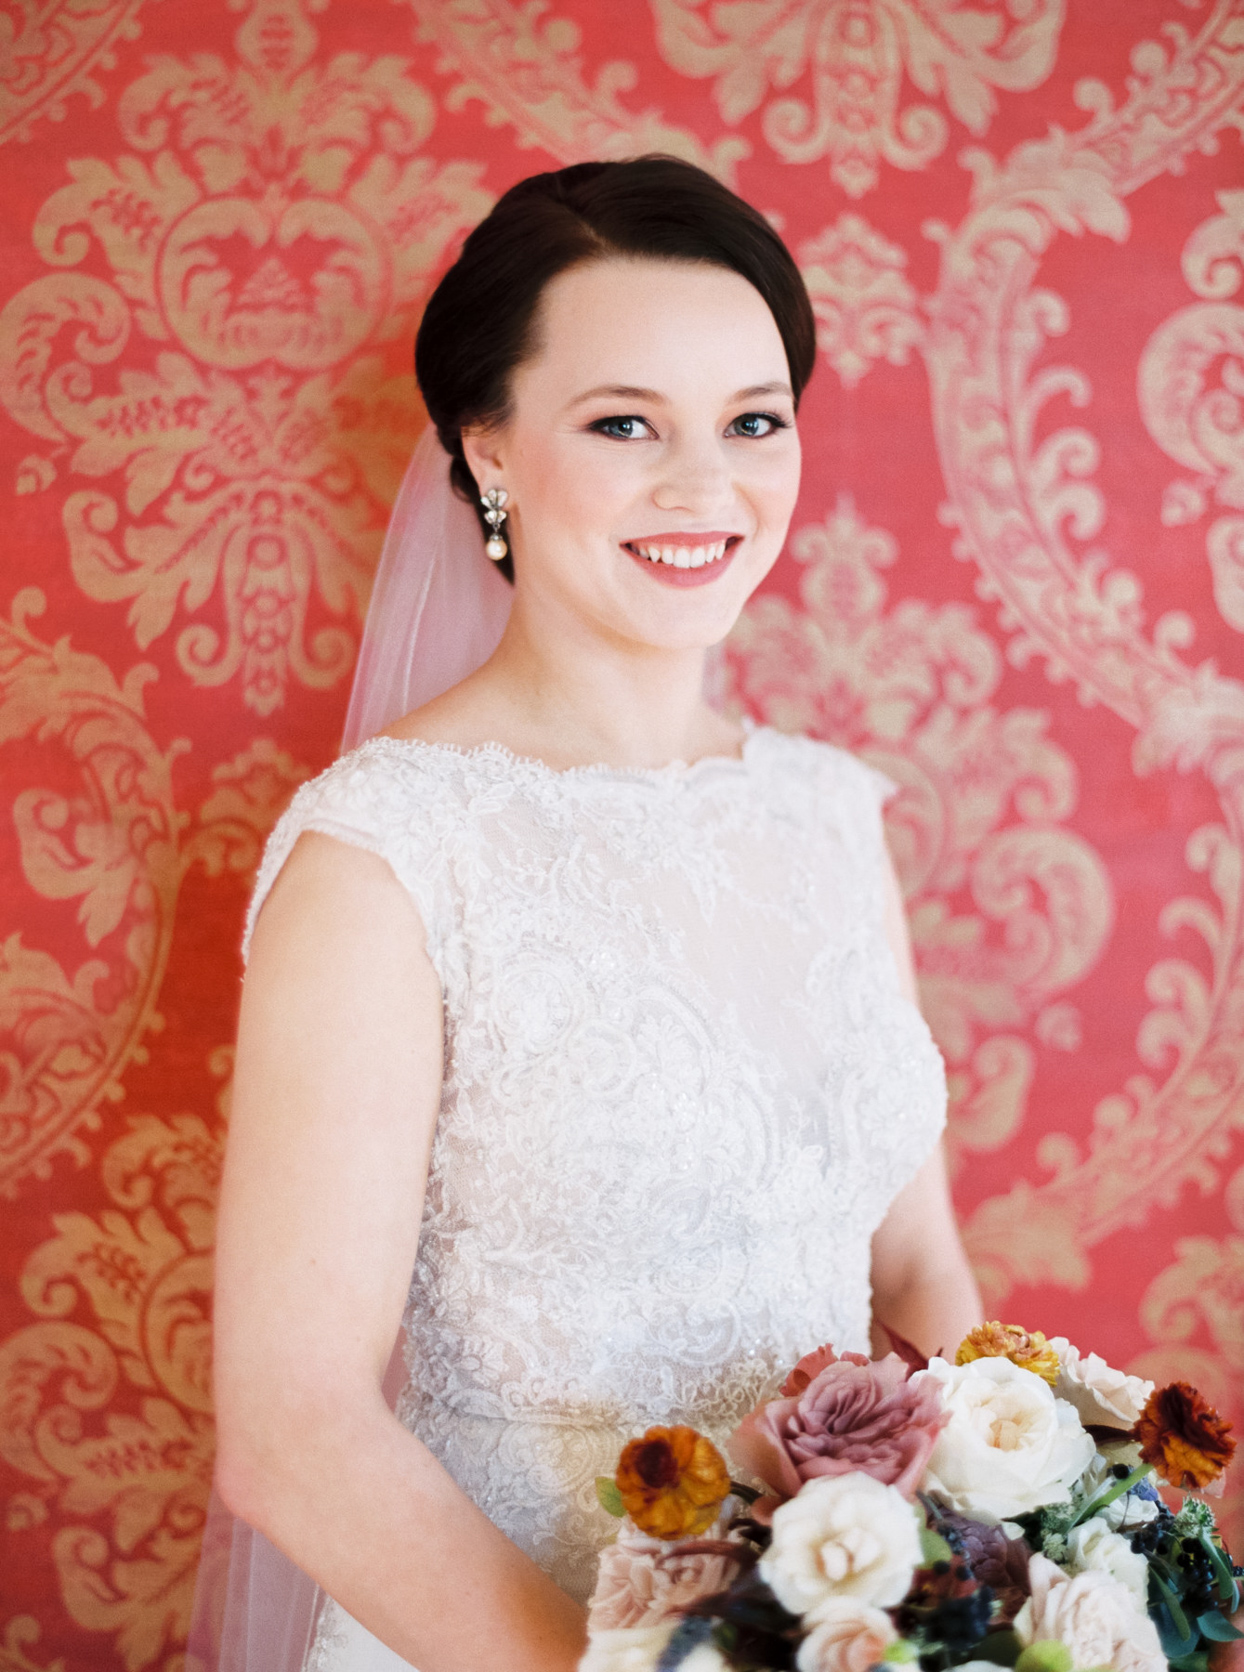 bride in white lace gown in front of patterned wall